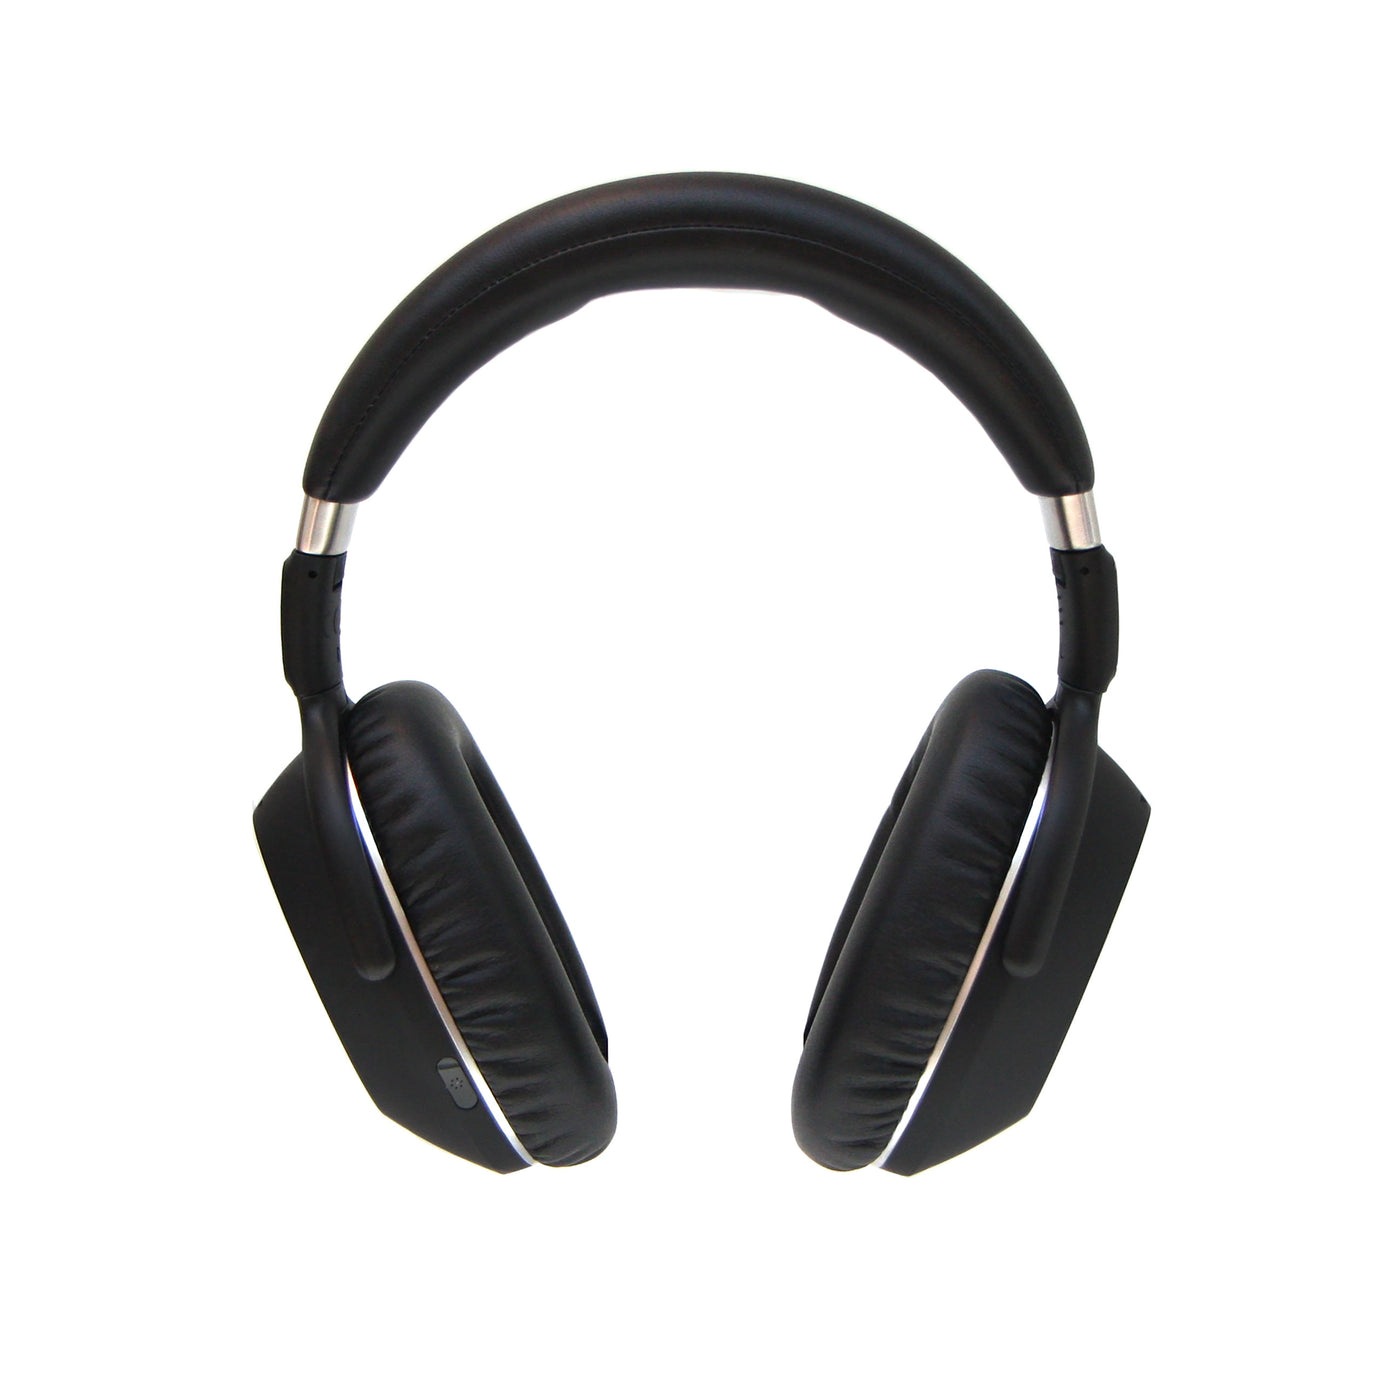 Wireless Headset - PXC 550